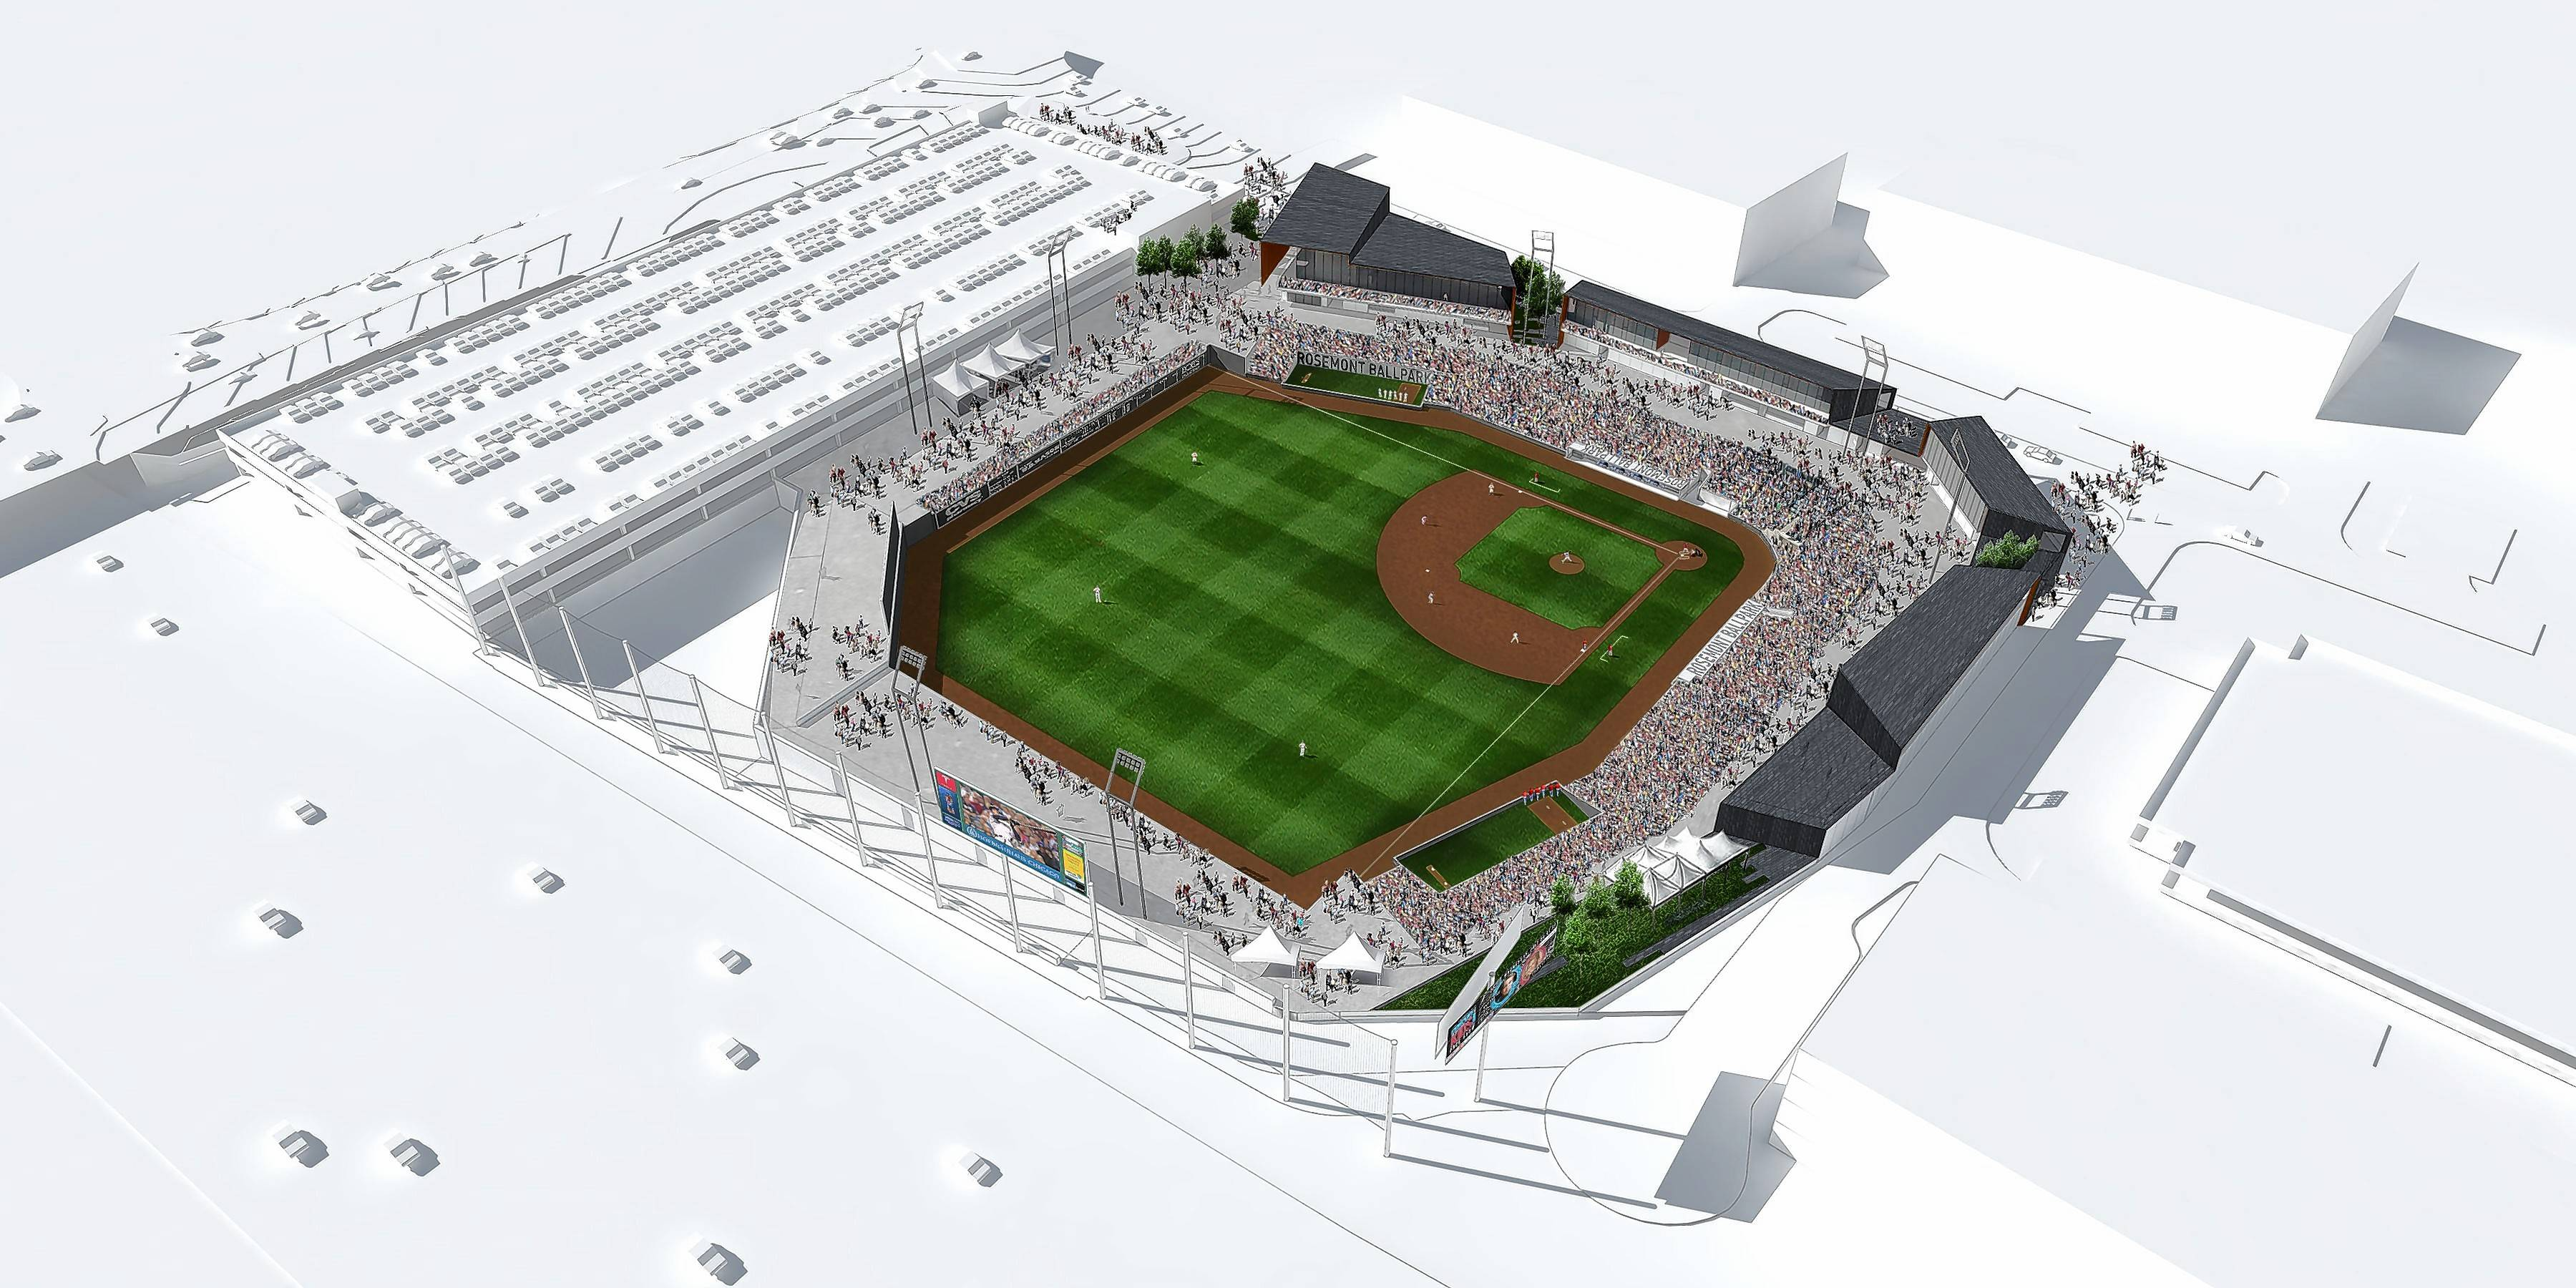 A rendering shows the layout of a proposed $56 million, 6,300-seat minor league baseball stadium adjacent to the Tri-State Tollway and Balmoral Avenue in Rosemont.